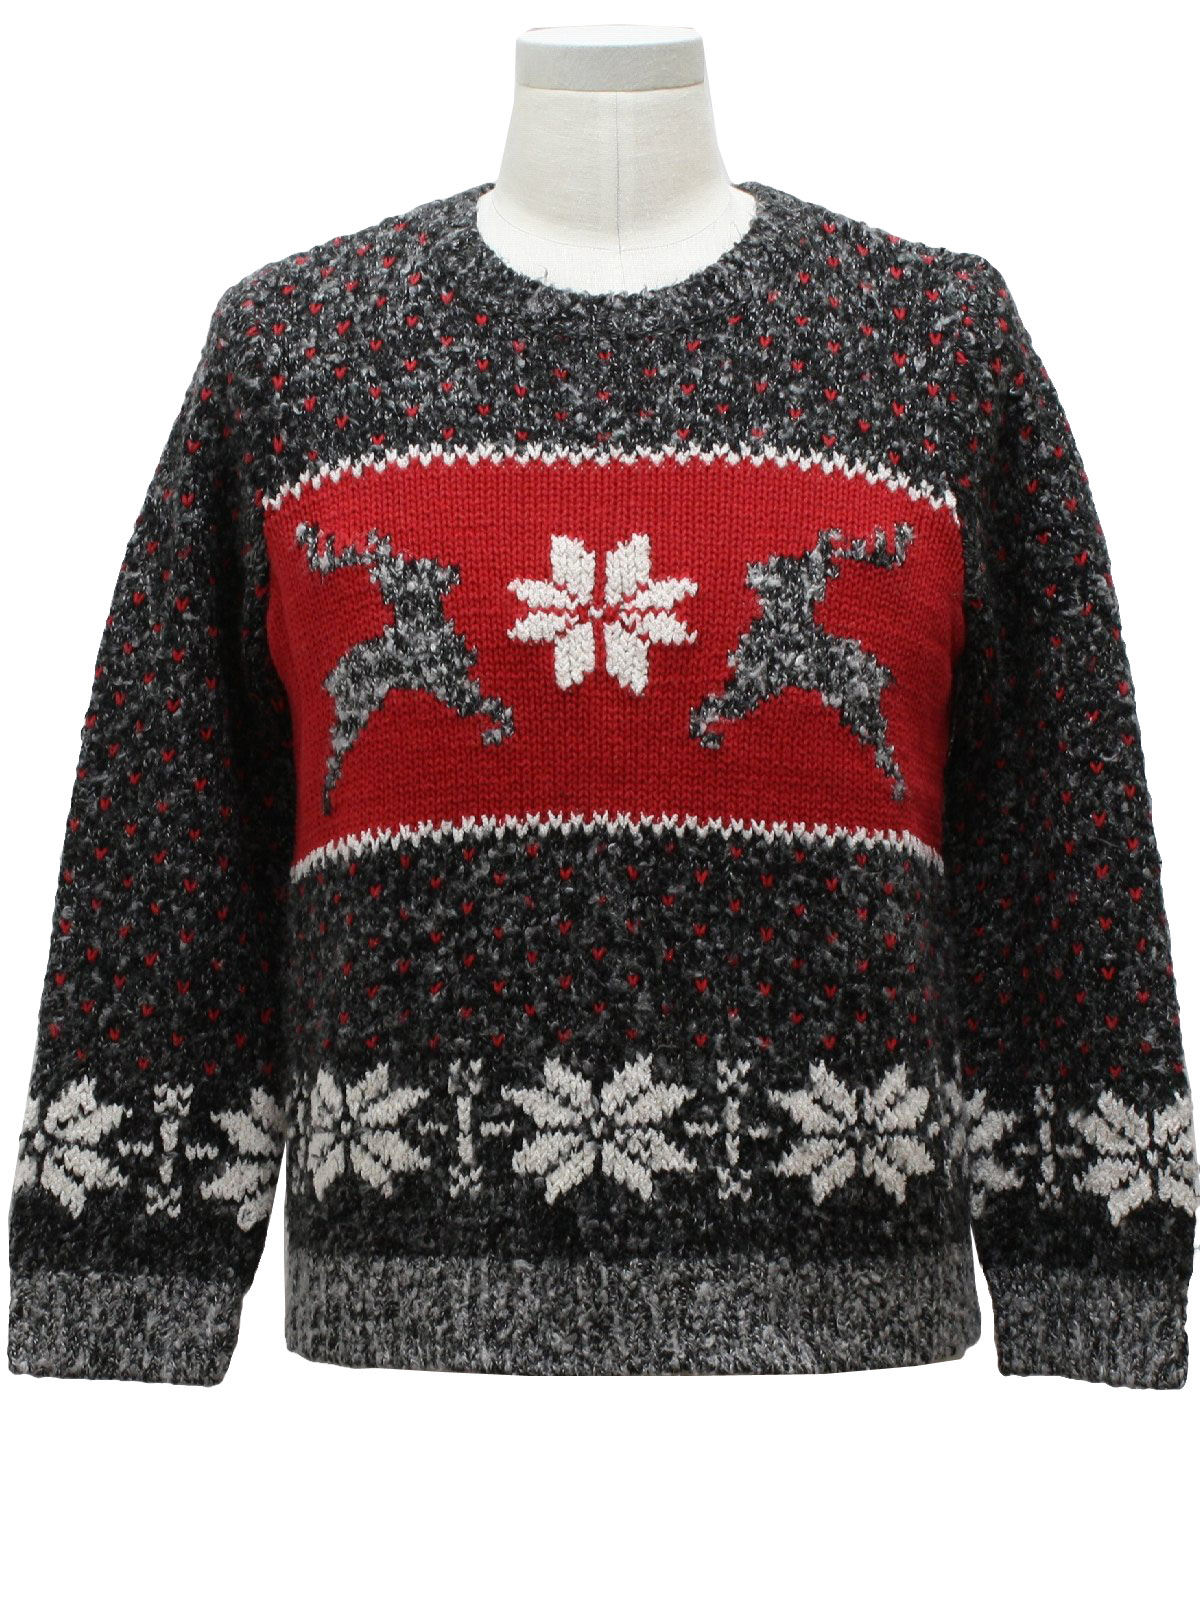 classic reindeer ugly christmas sweater russ unisex black and gray blend background ramie acrylic longsleeve pullover ugly christmas ski sweater - Classic Christmas Sweaters